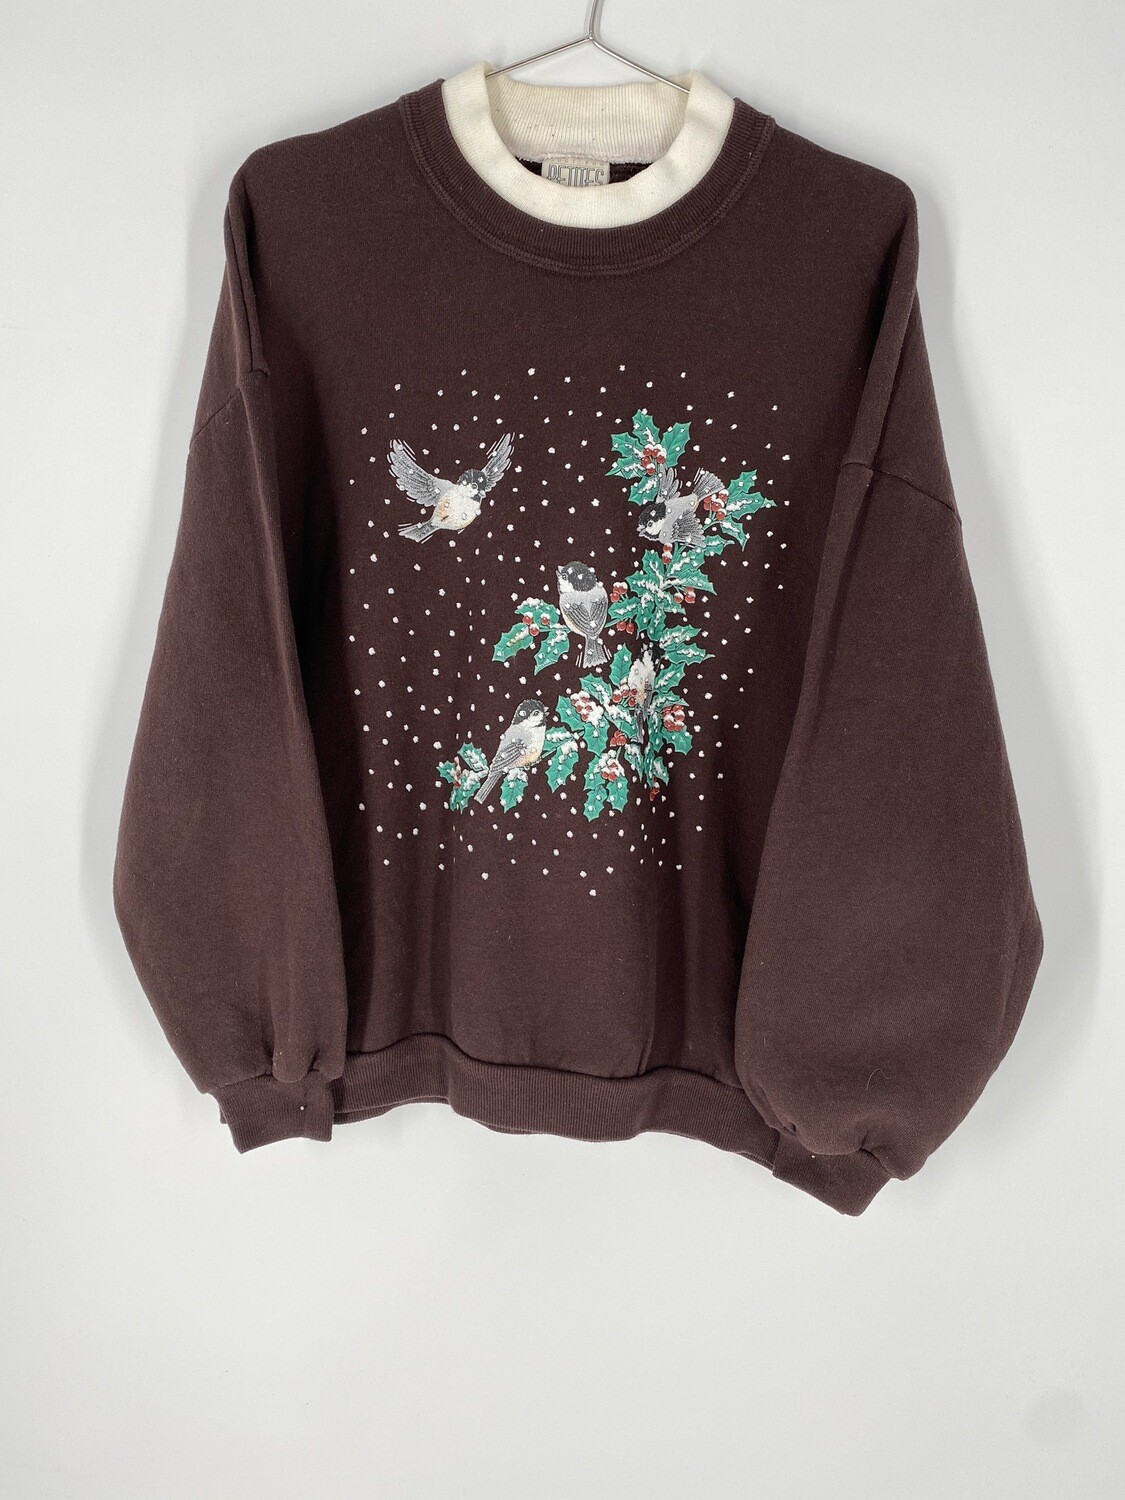 Brown Holiday Sweatshirt Size L